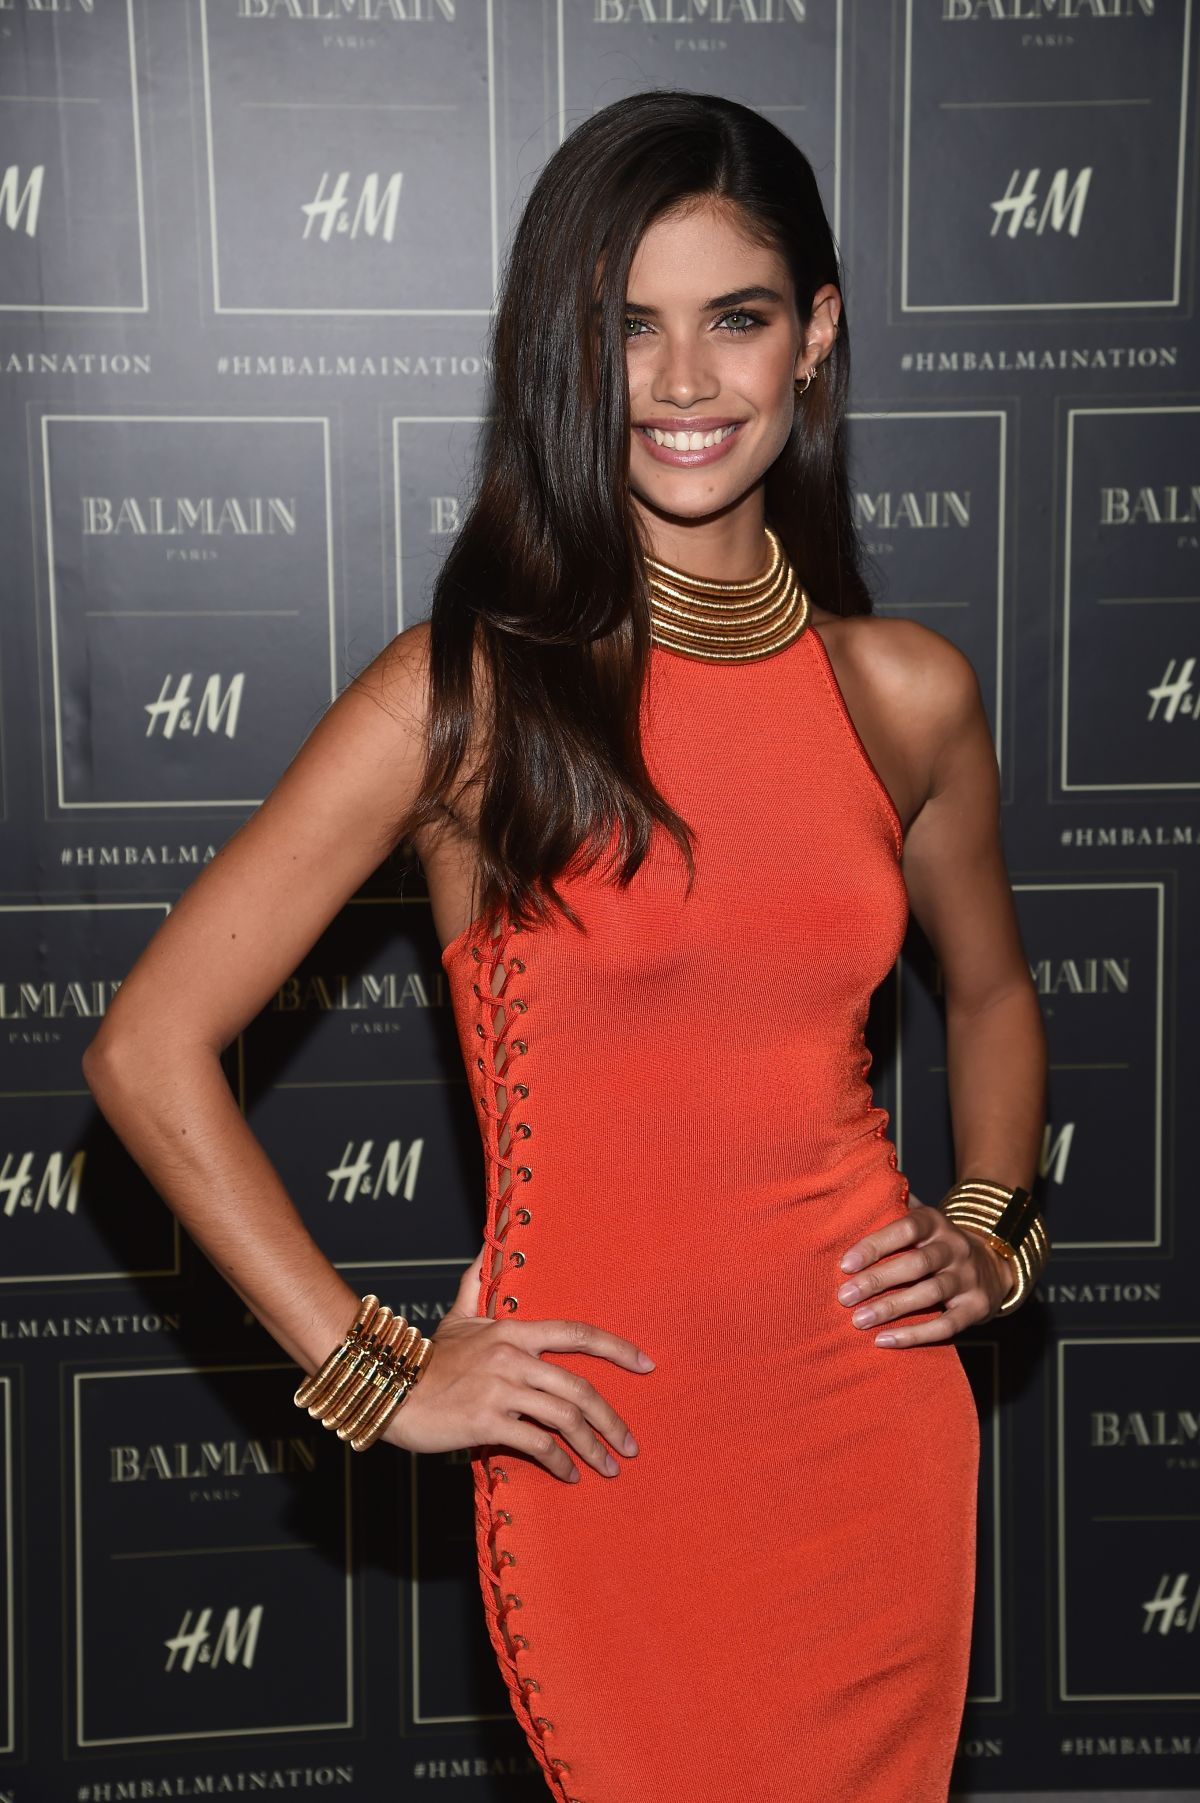 SARA SAMPAIO at Balmain X H&M Collection Launch in New York 10/20/2015